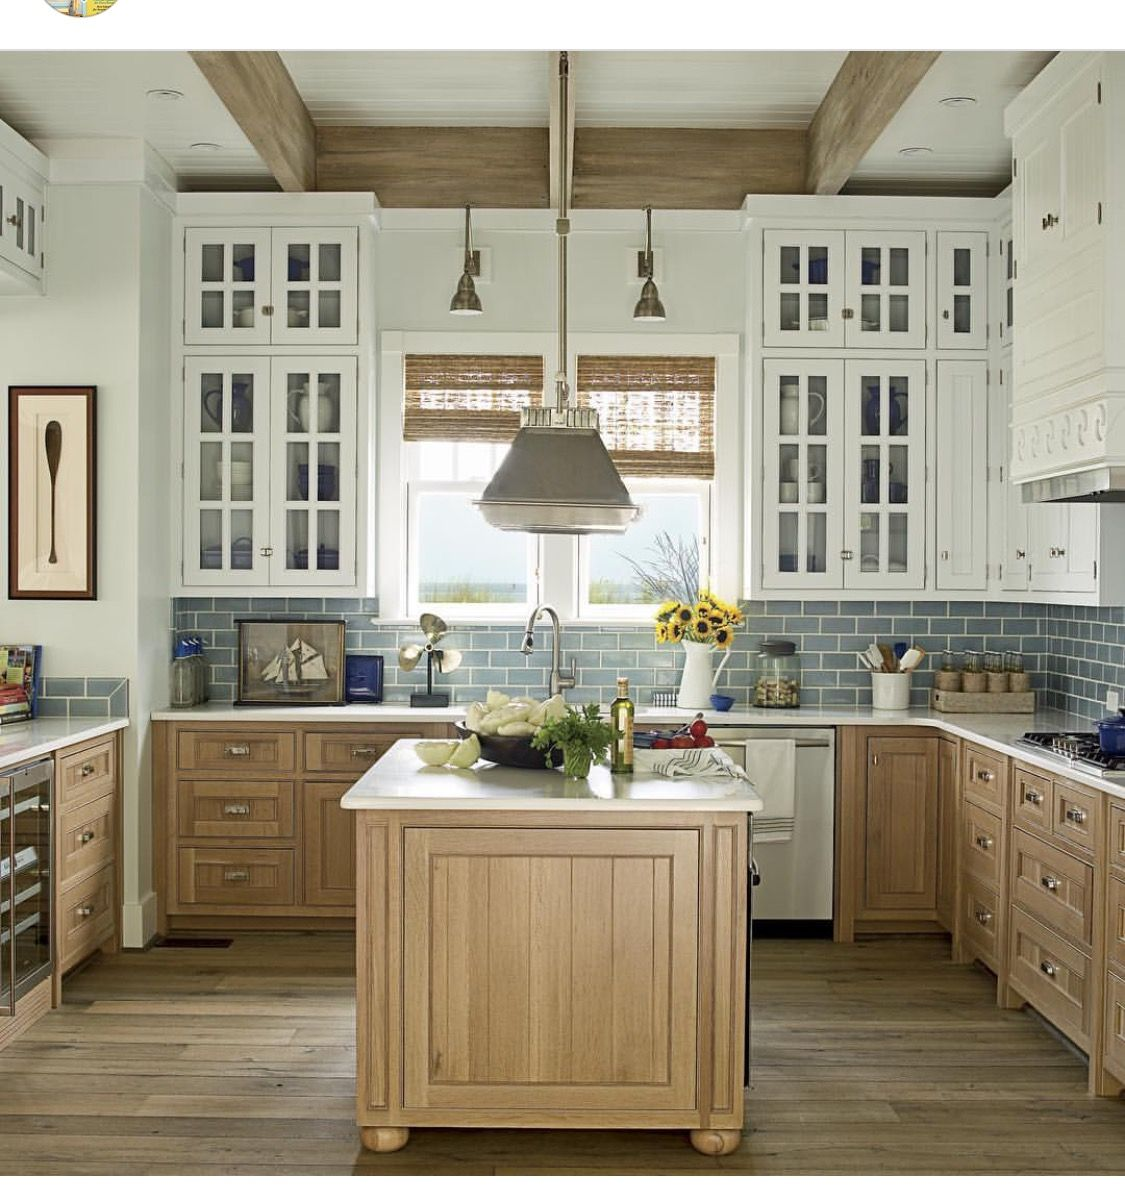 Pin by lisa stoner on home in pinterest house home and kitchen